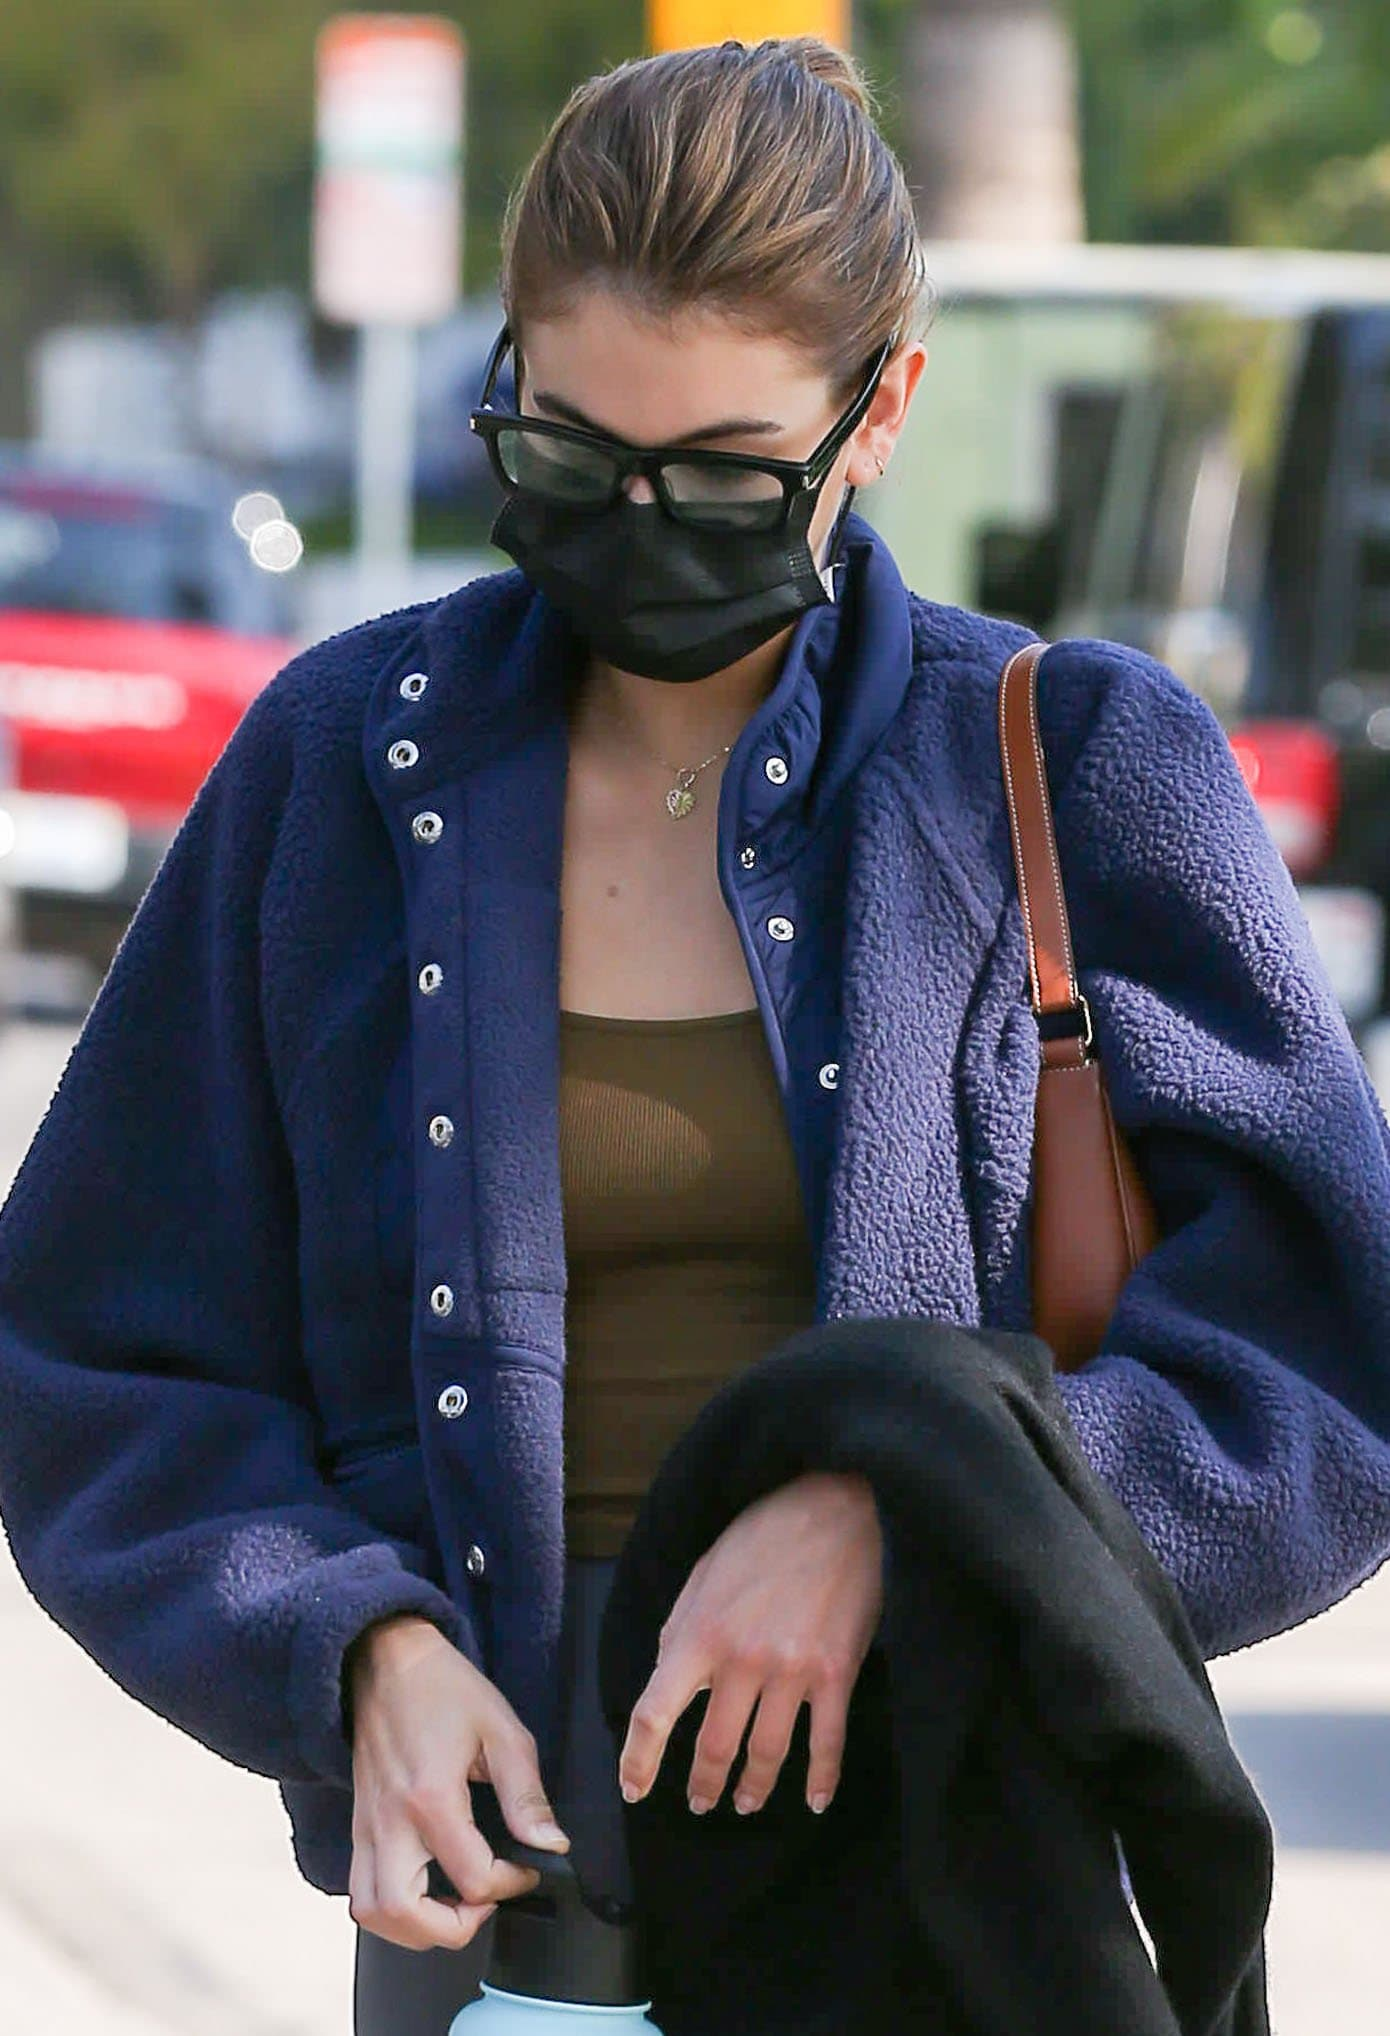 Kaia Gerber looks chic in her geeky black-framed sunglasses